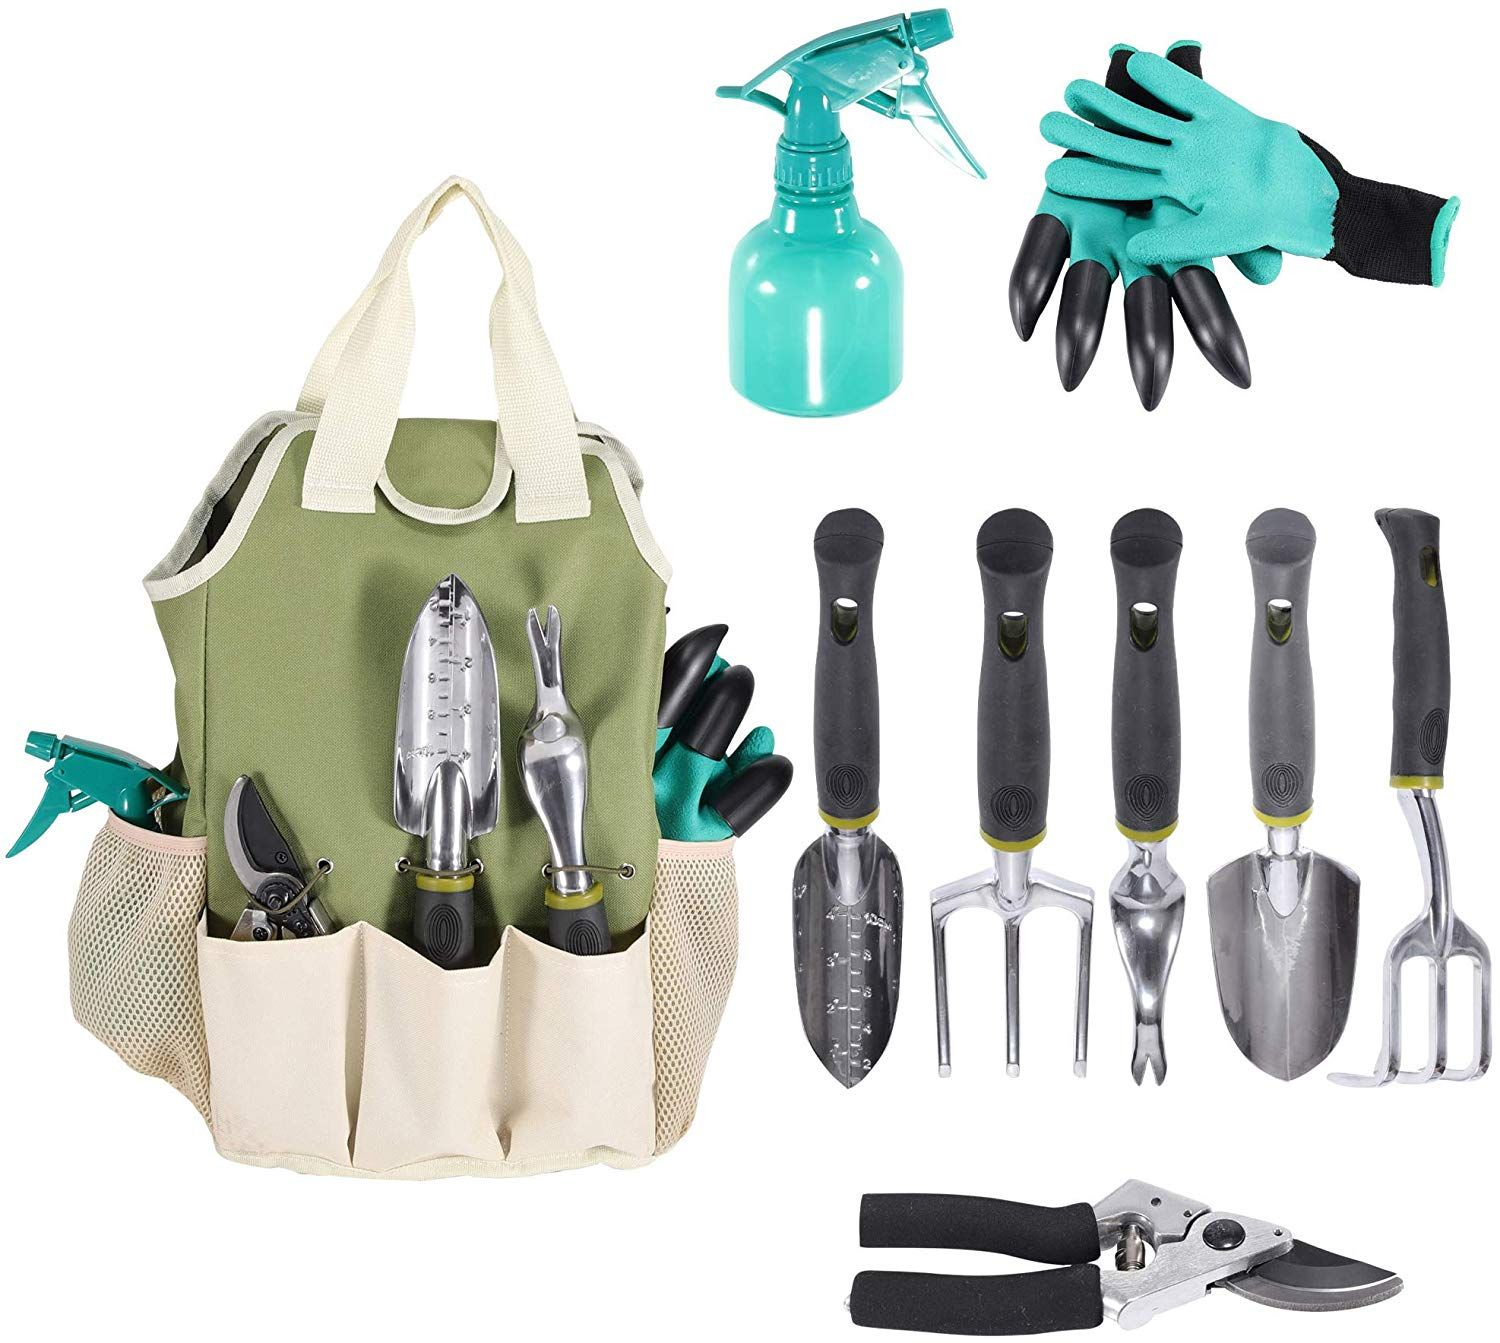 2e4a66552357949cf1570185eaee09ab - Bloom 4 Piece Gardening Tool Set